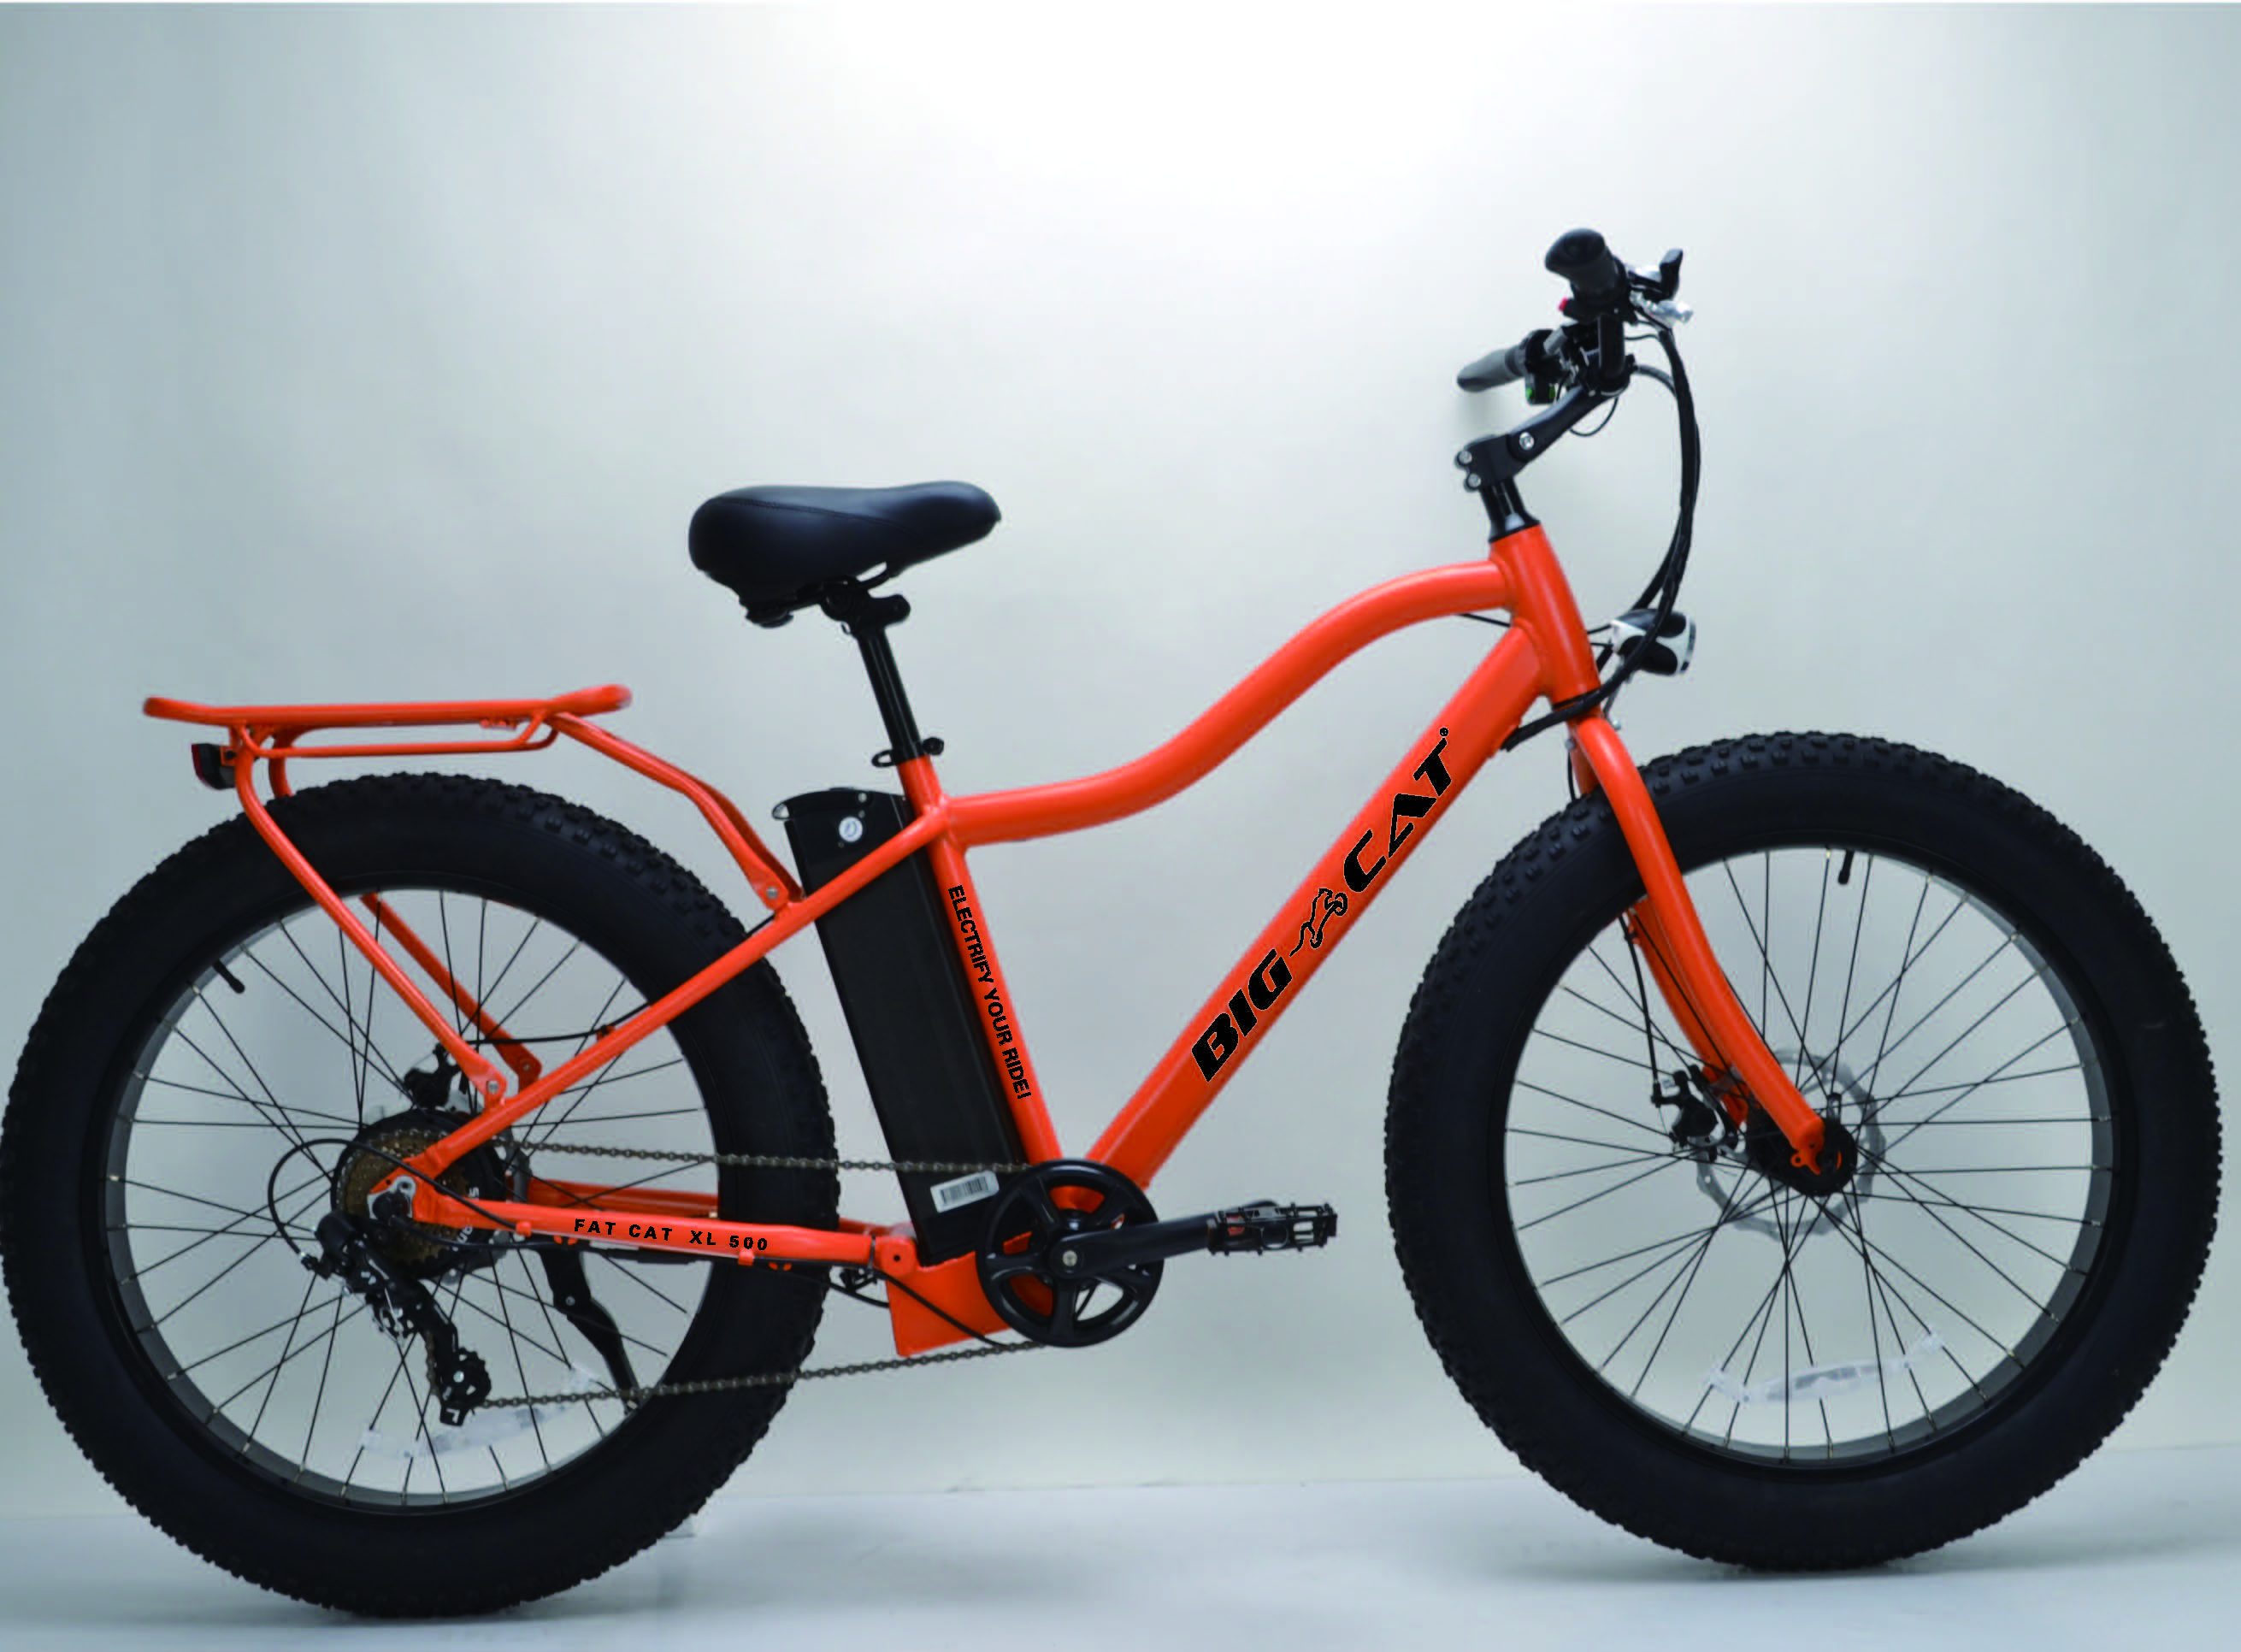 All Terrain Electric Fat Bike This Ebike By Big Cat Is This